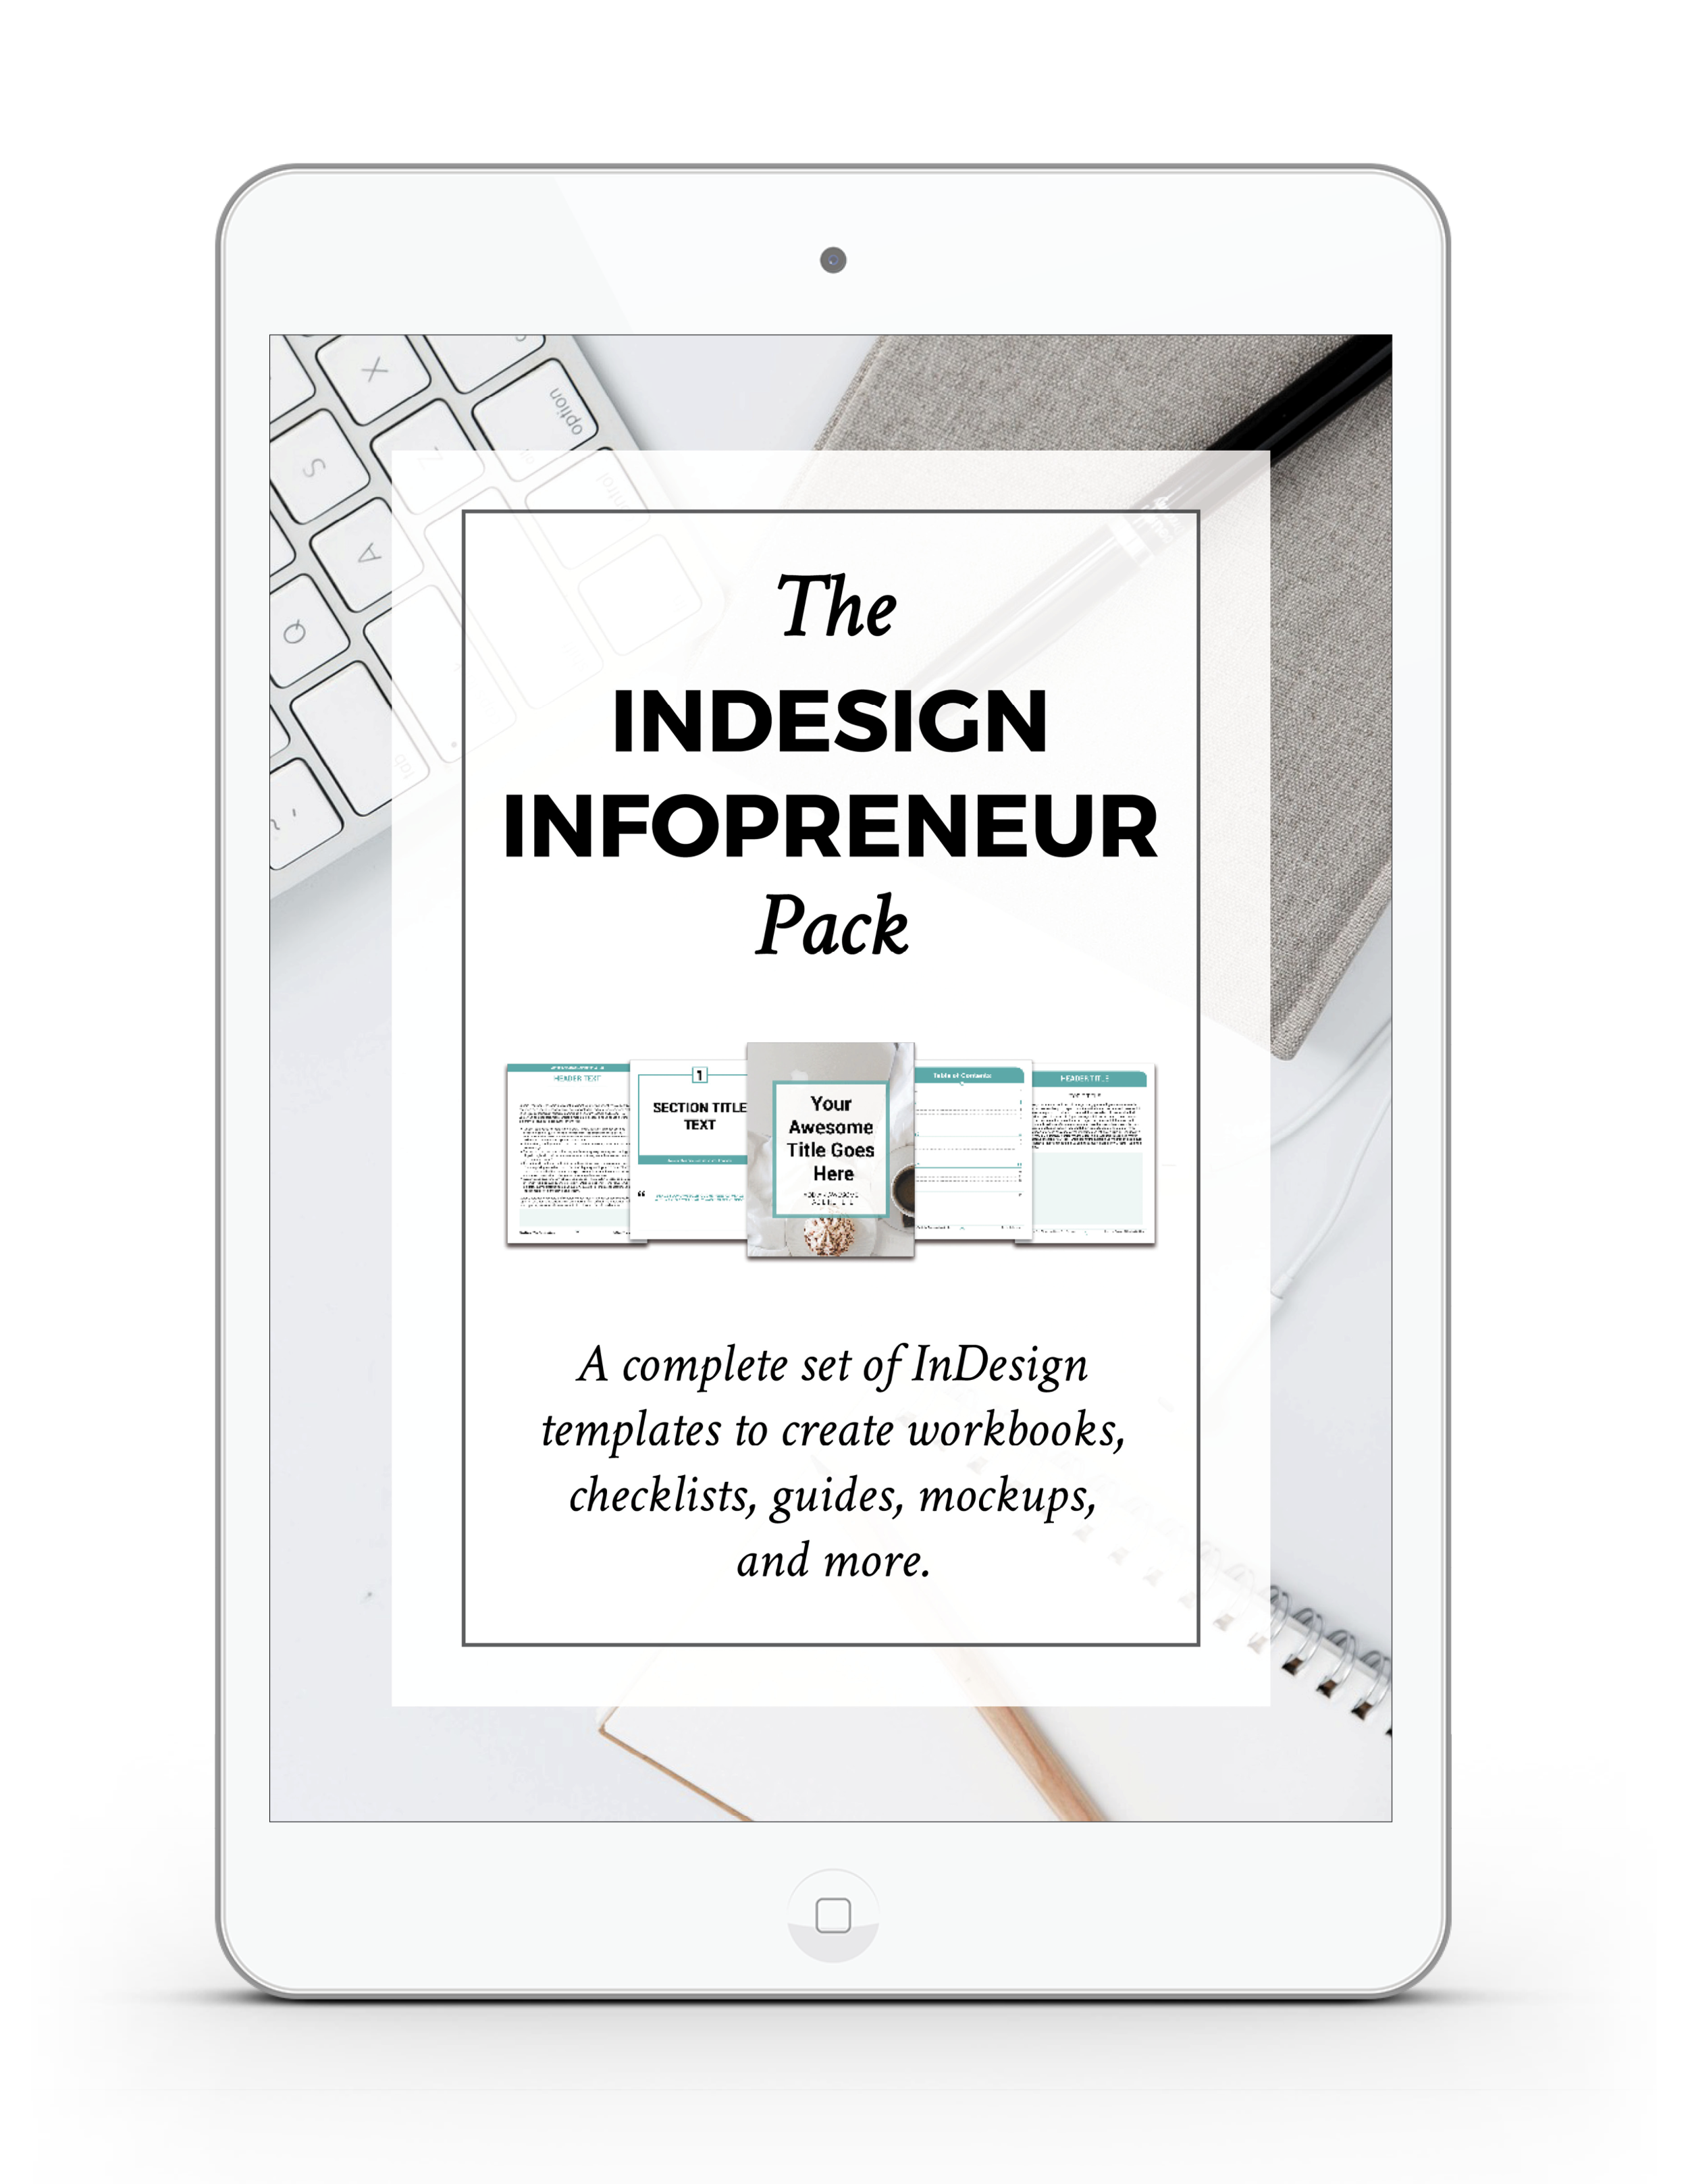 iPad_mockup-indesign_product_pack.png